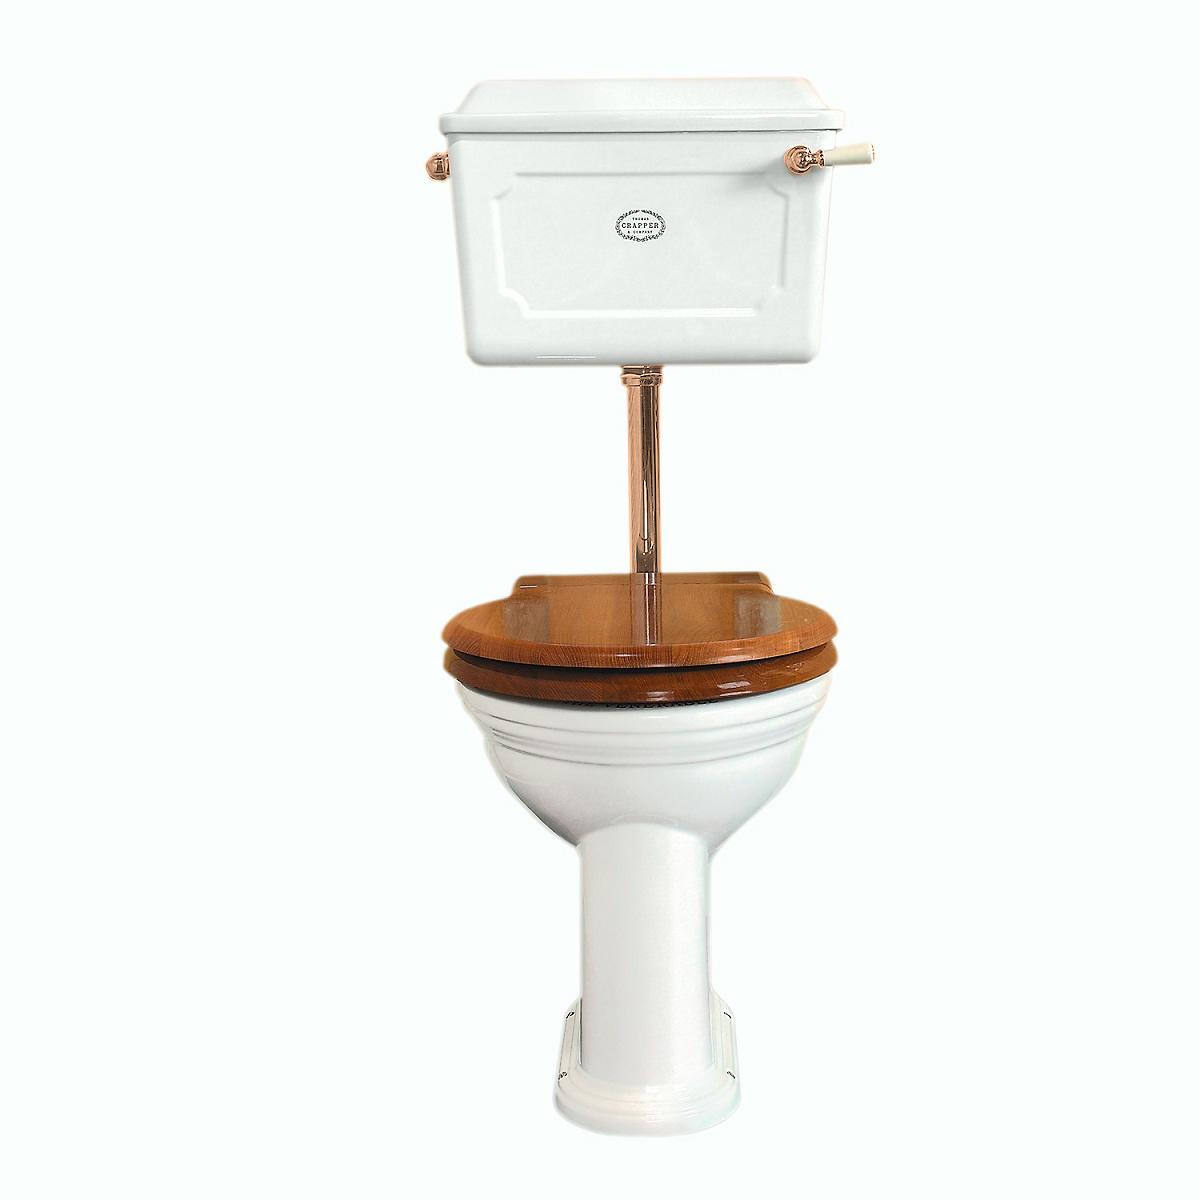 Thomas Crapper Low-level WC Set White - Polished Brass